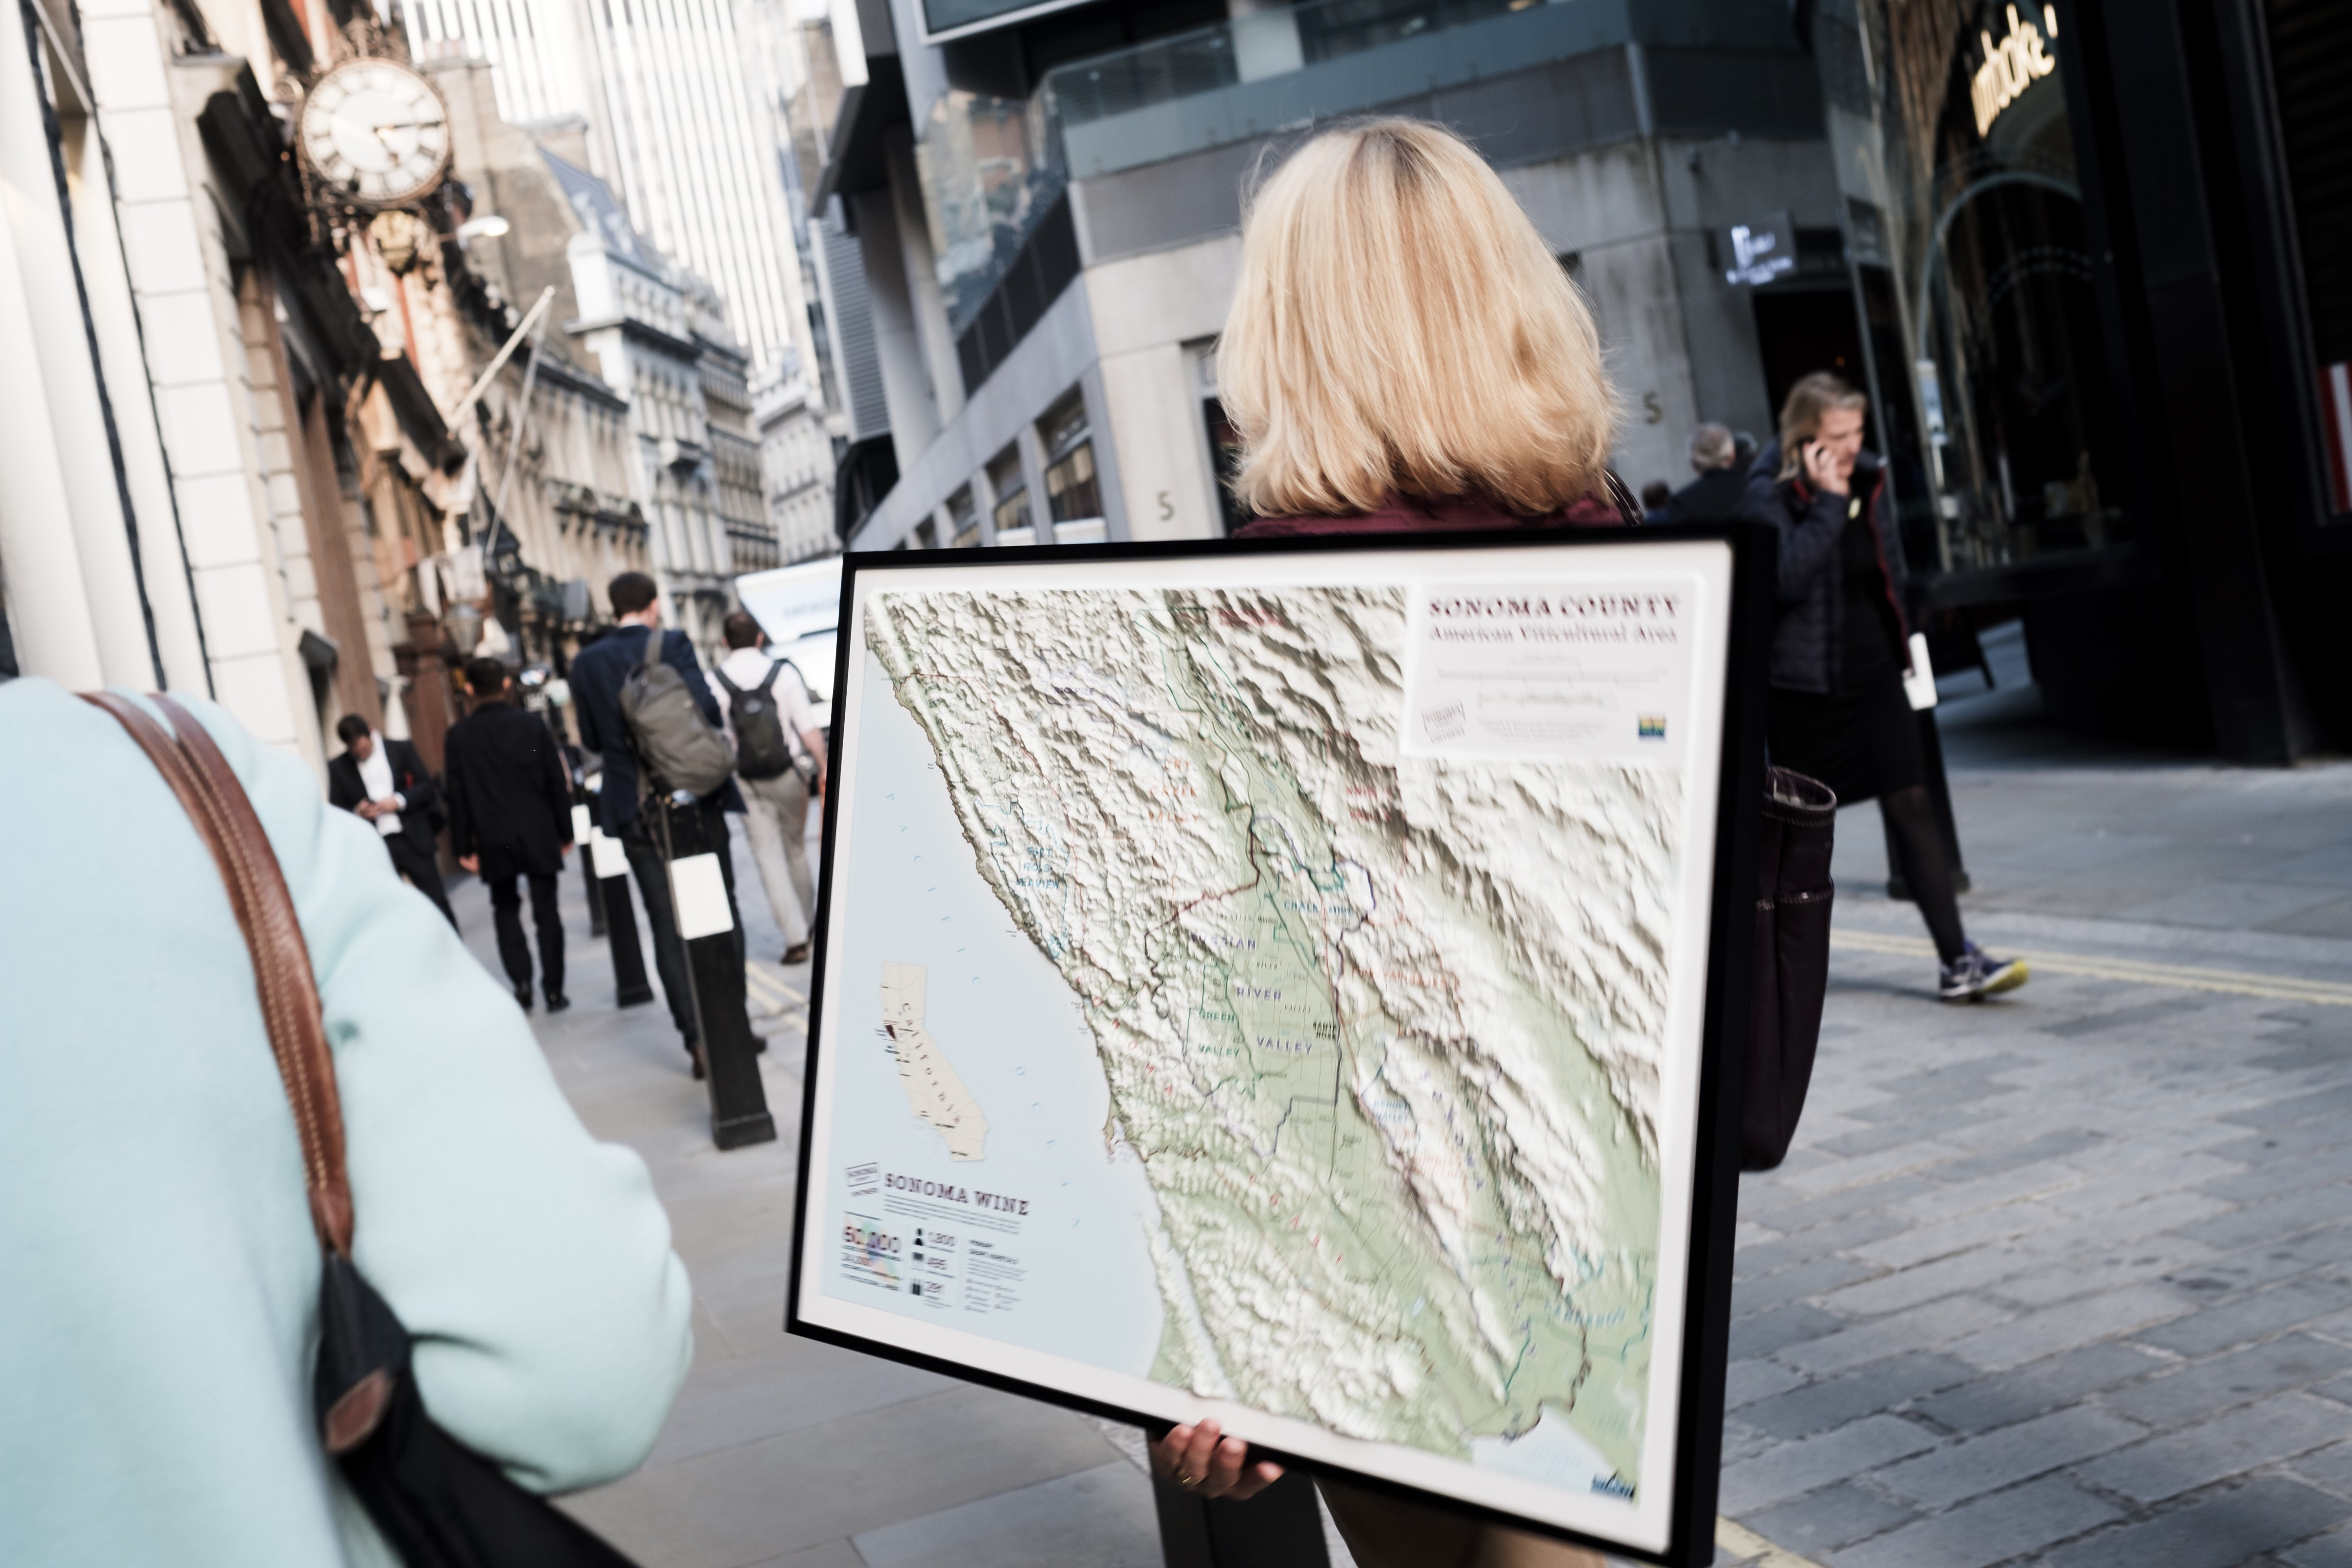 Follow the map: having a map proved useful showing where the wineries were located and even more so following it on route to the next restaurant